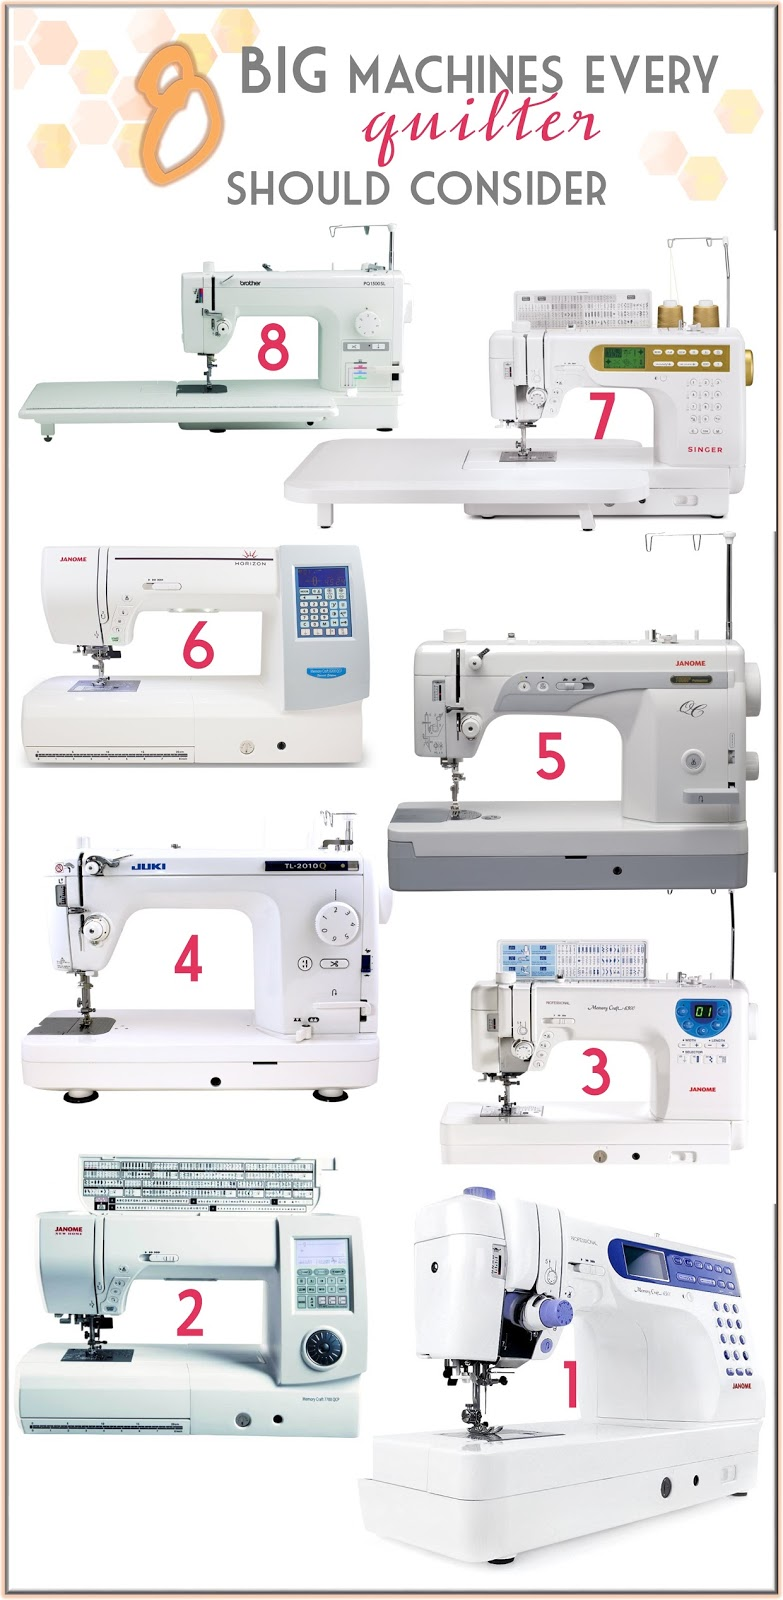 Larger Harped Sewing Machines Great For Quilters Nice And All Of Those Large